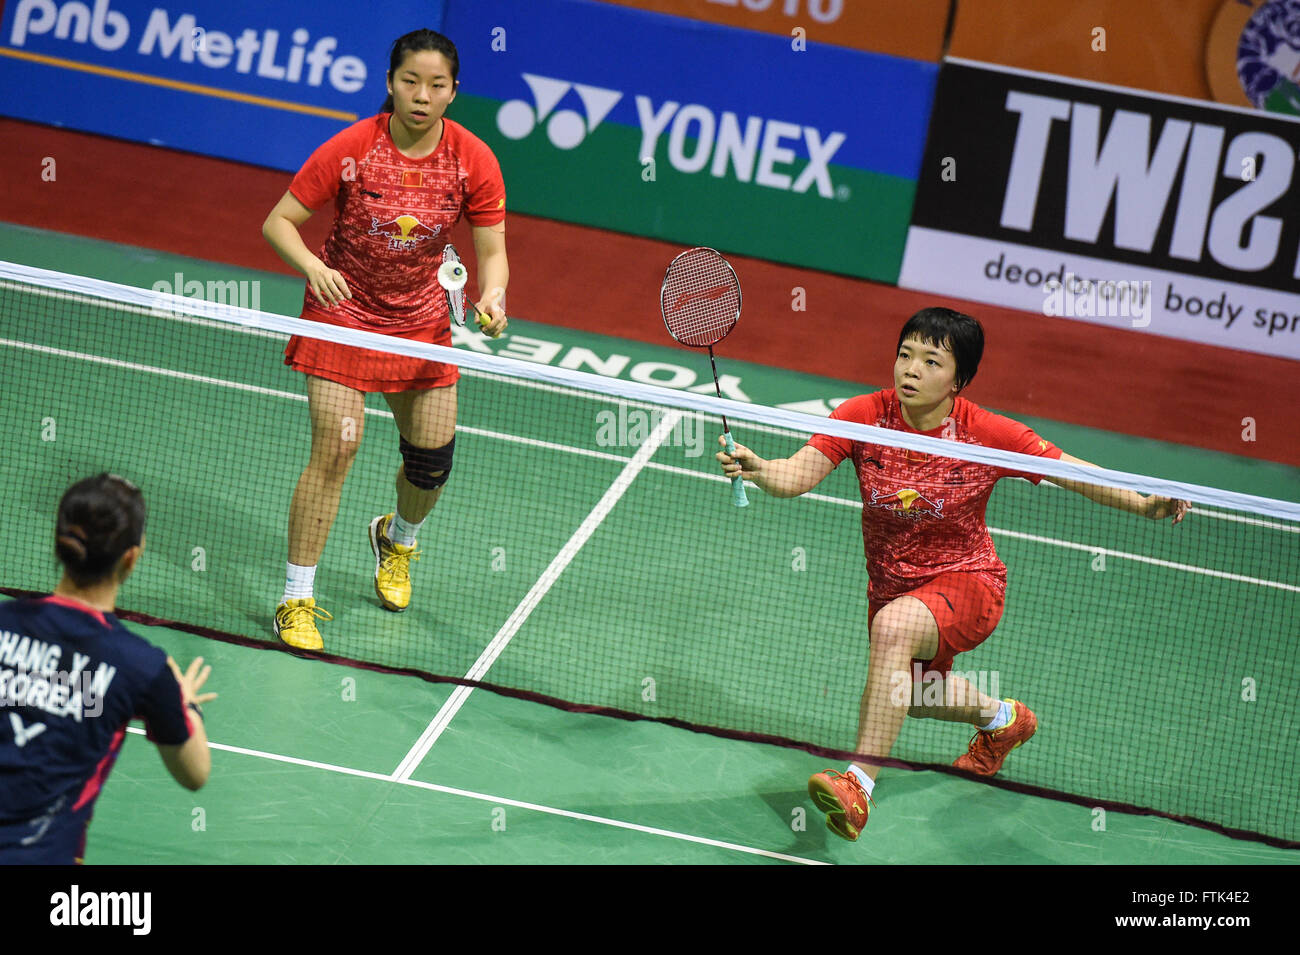 New Delhi 30th Mar 2016 Chen Qingchen R and Jia Yifan of